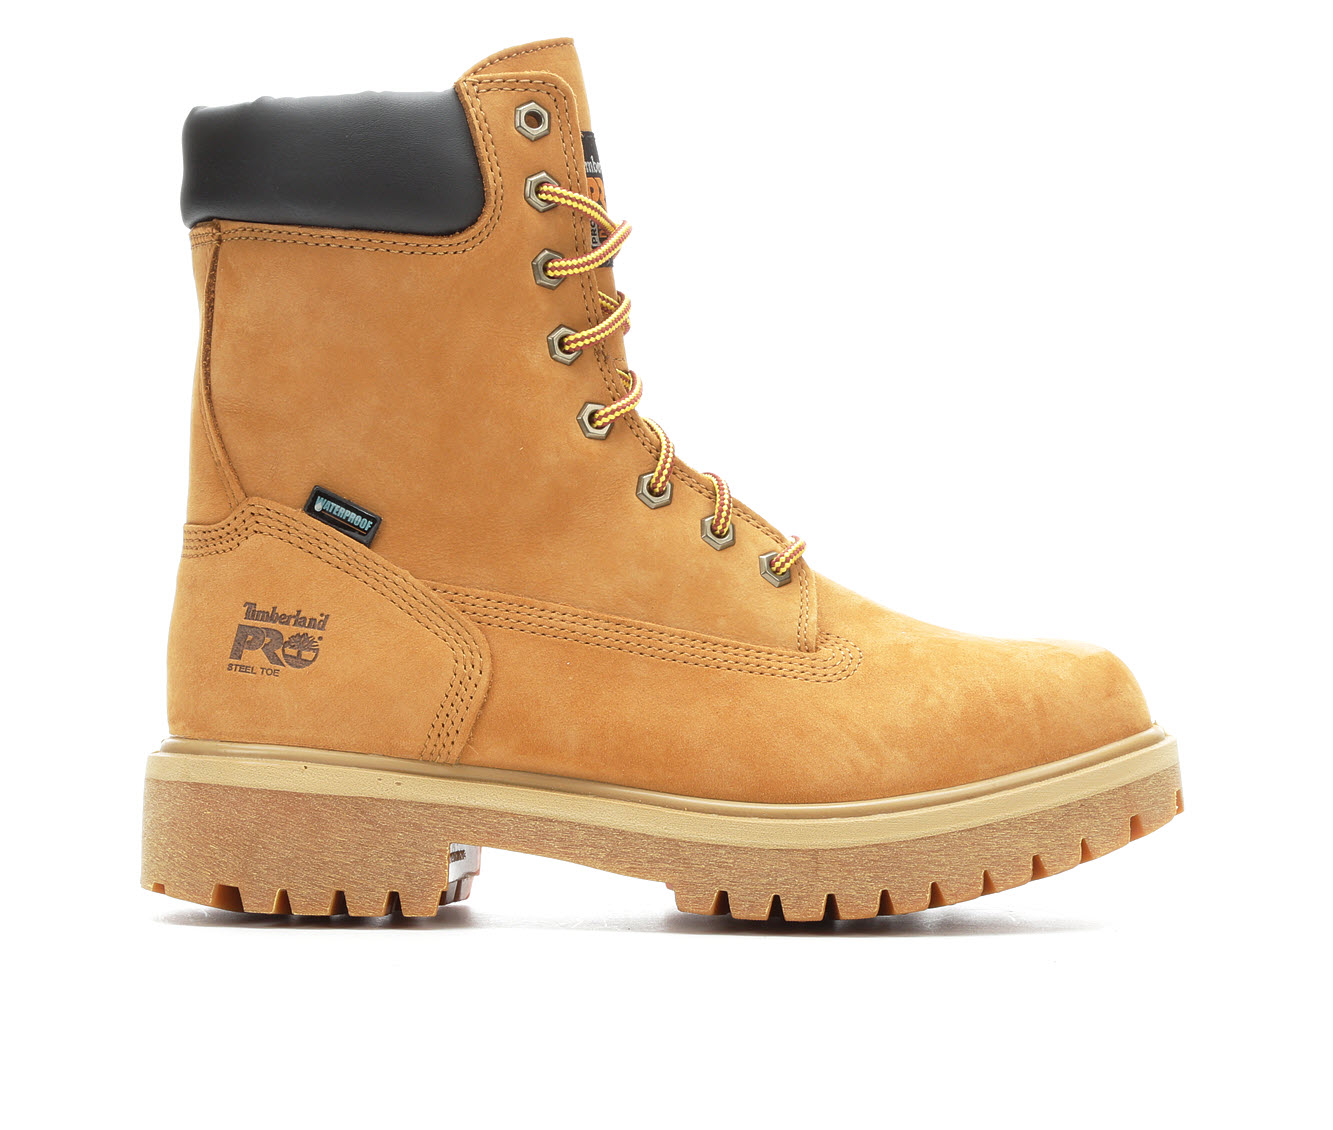 Timberland Pro Direct Attach 26002 Steel Toe Waterproof Men's Boots (Beige Leather)